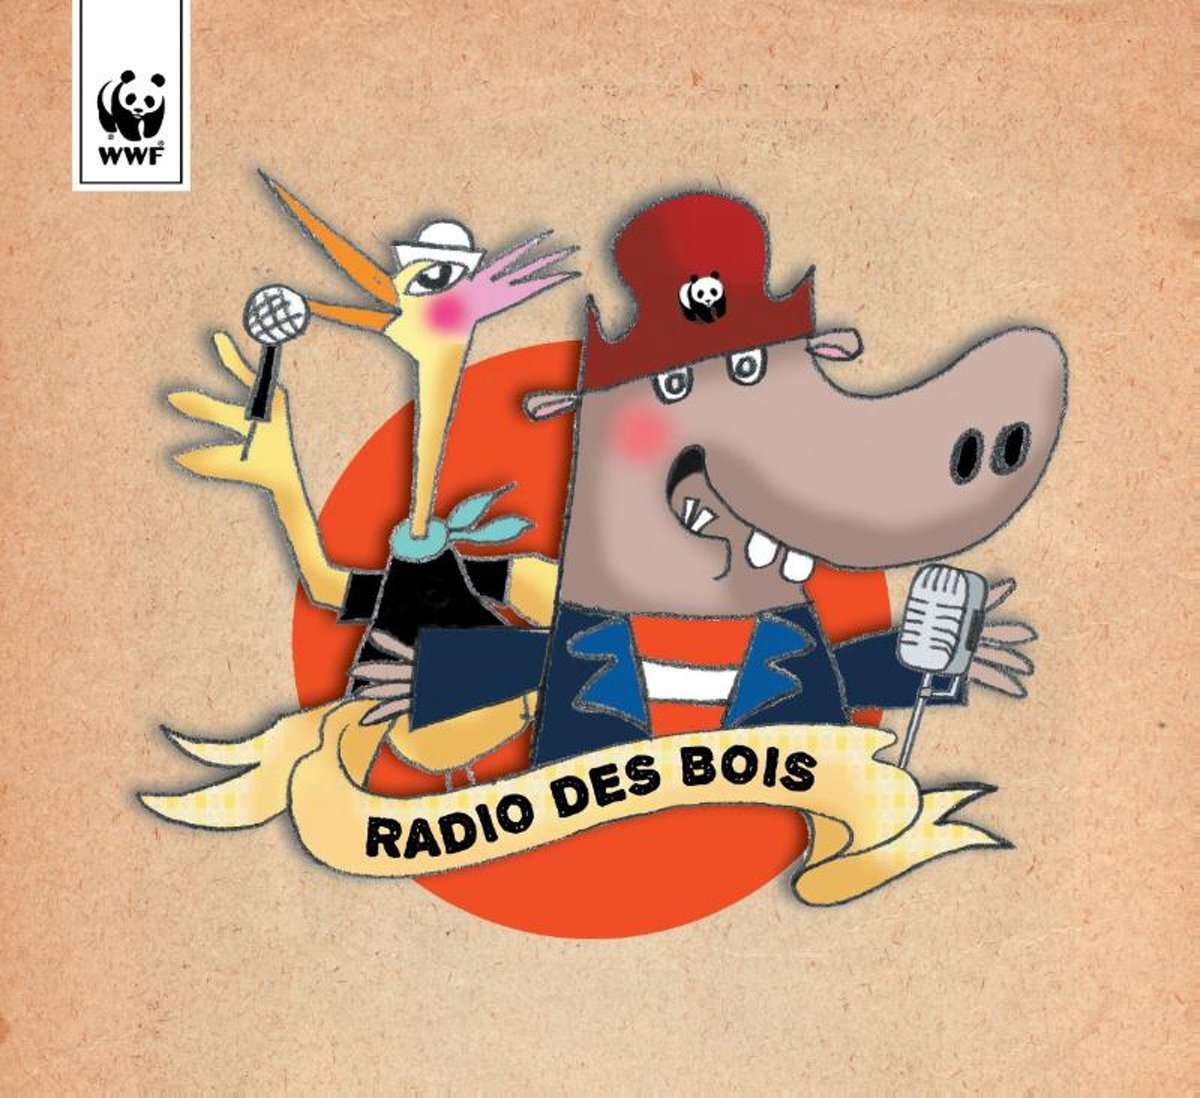 Various Artists - Wwf Radio Des Bois (Radio Oorwoud) kopen